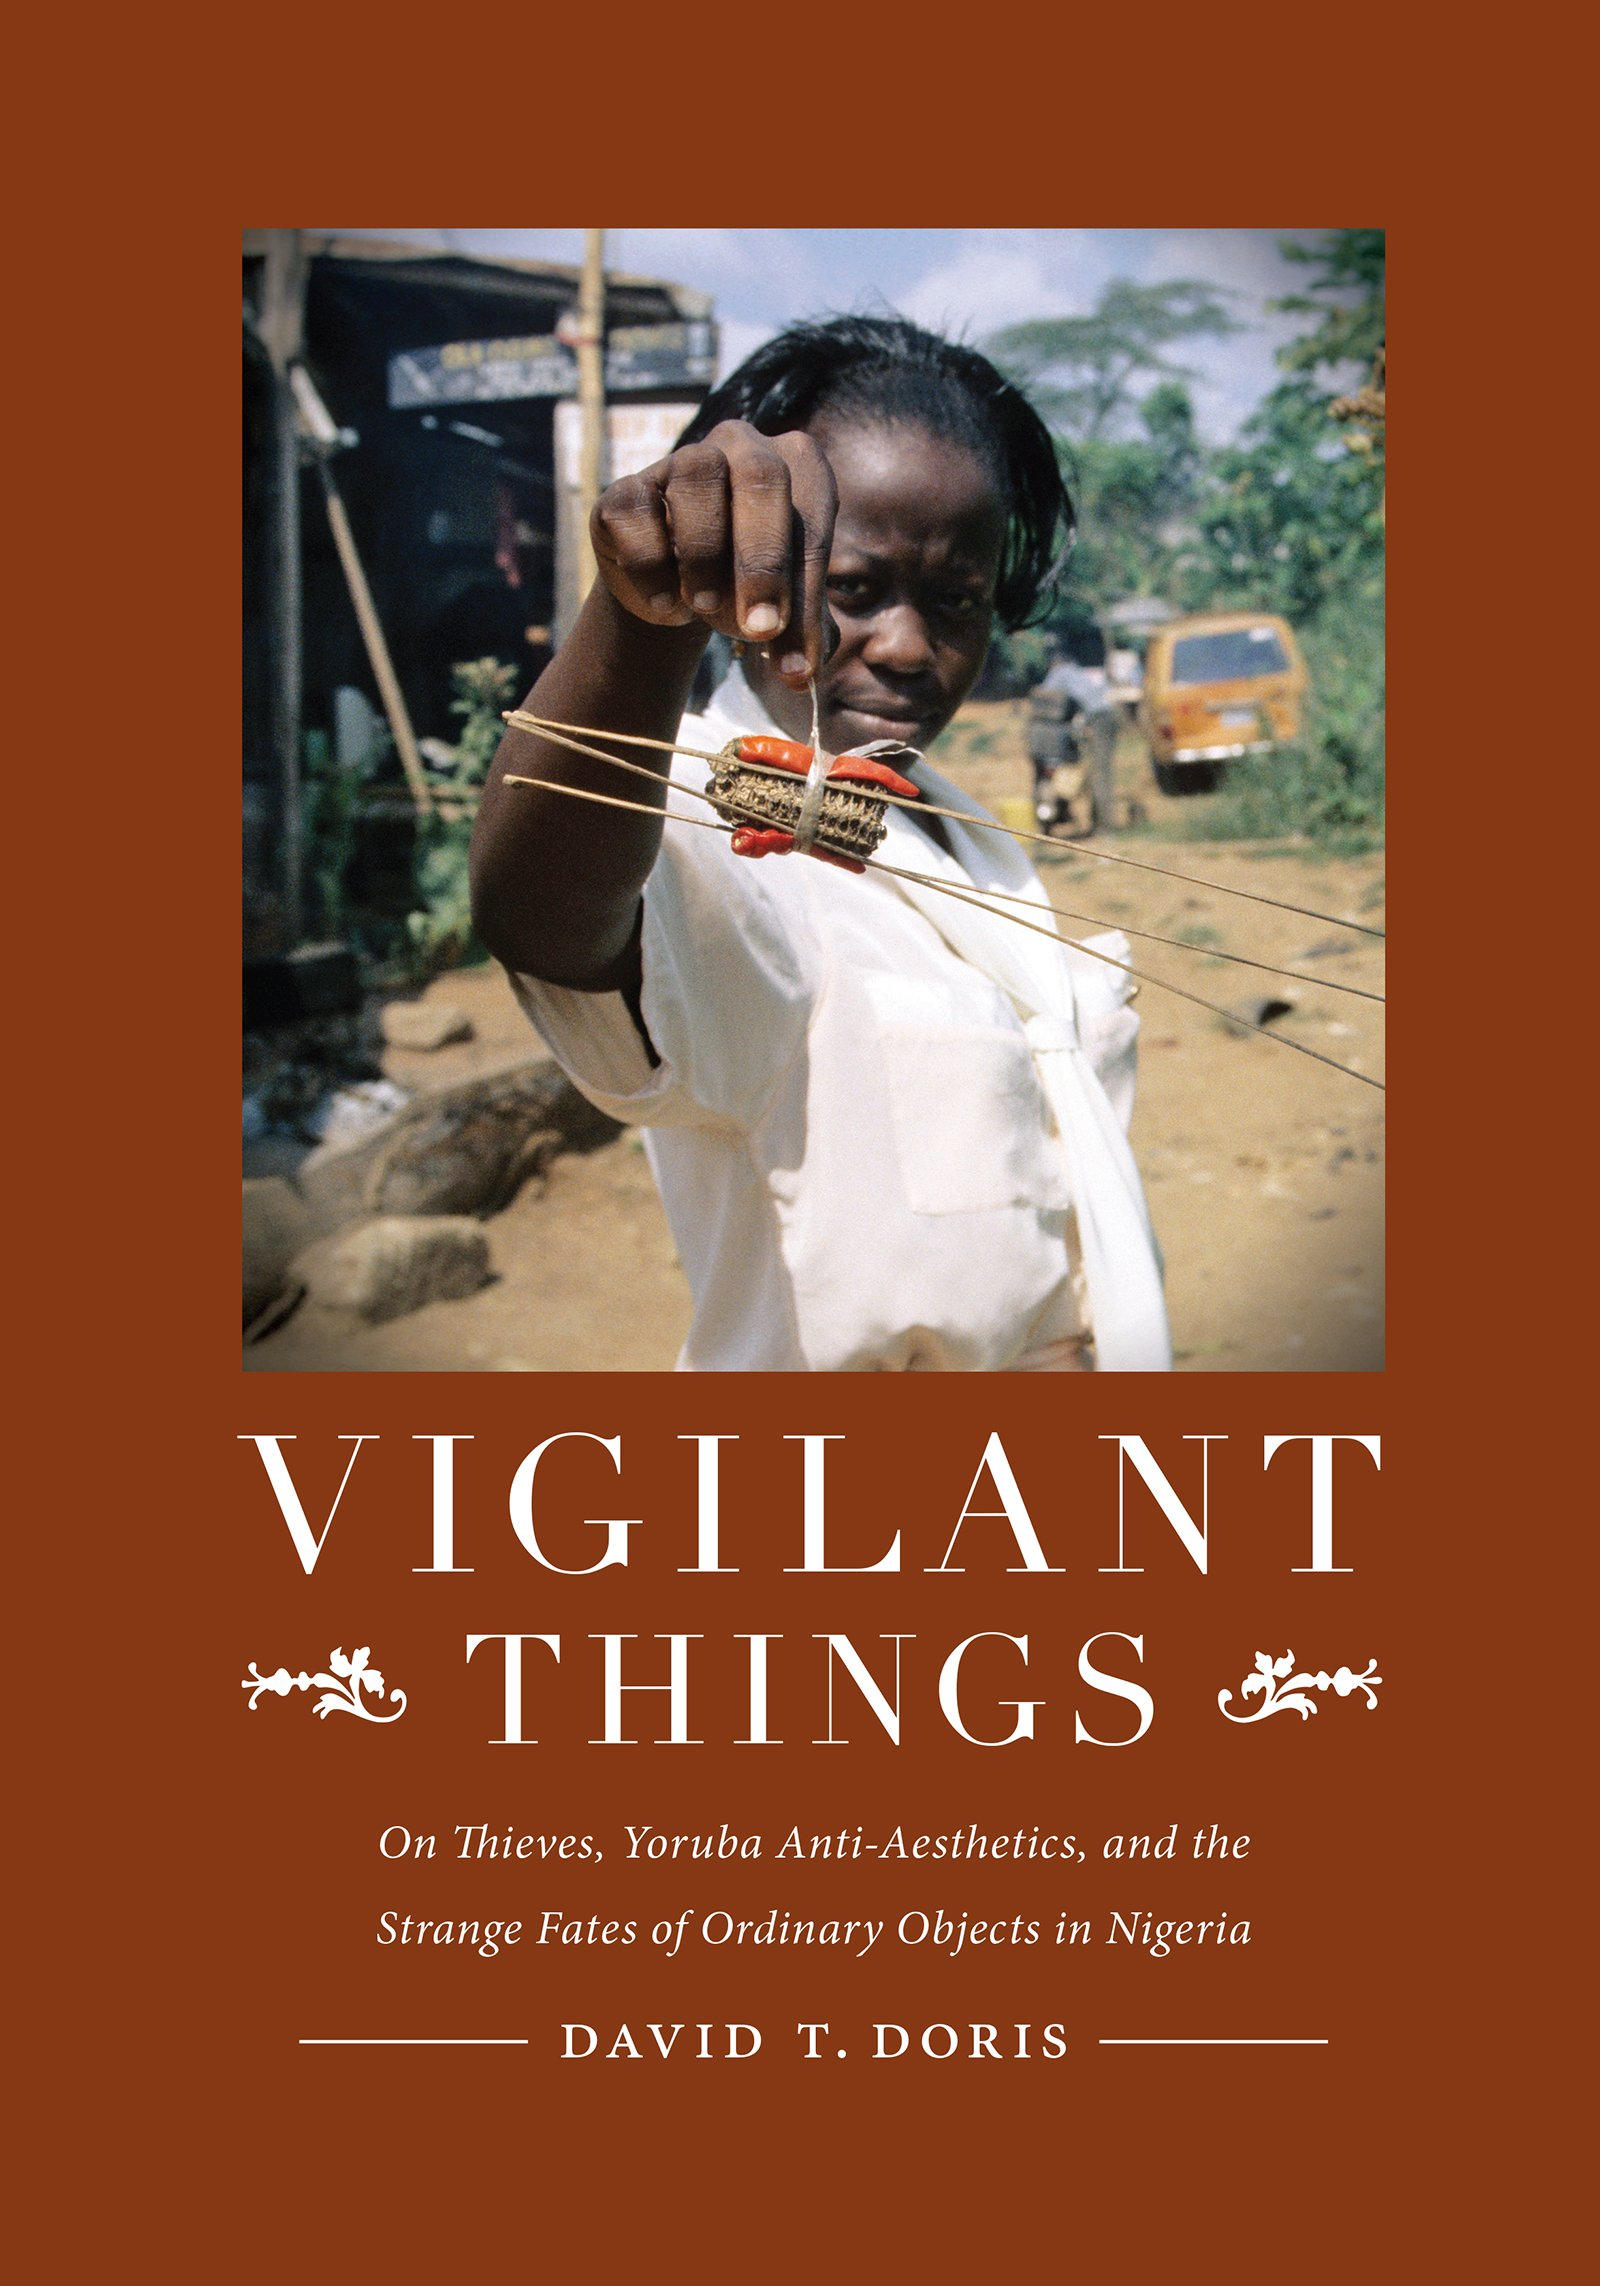 Download Vigilant Things: On Thieves, Yoruba Anti-Aesthetics, and The Strange Fates of Ordinary Objects in Nigeria PDF